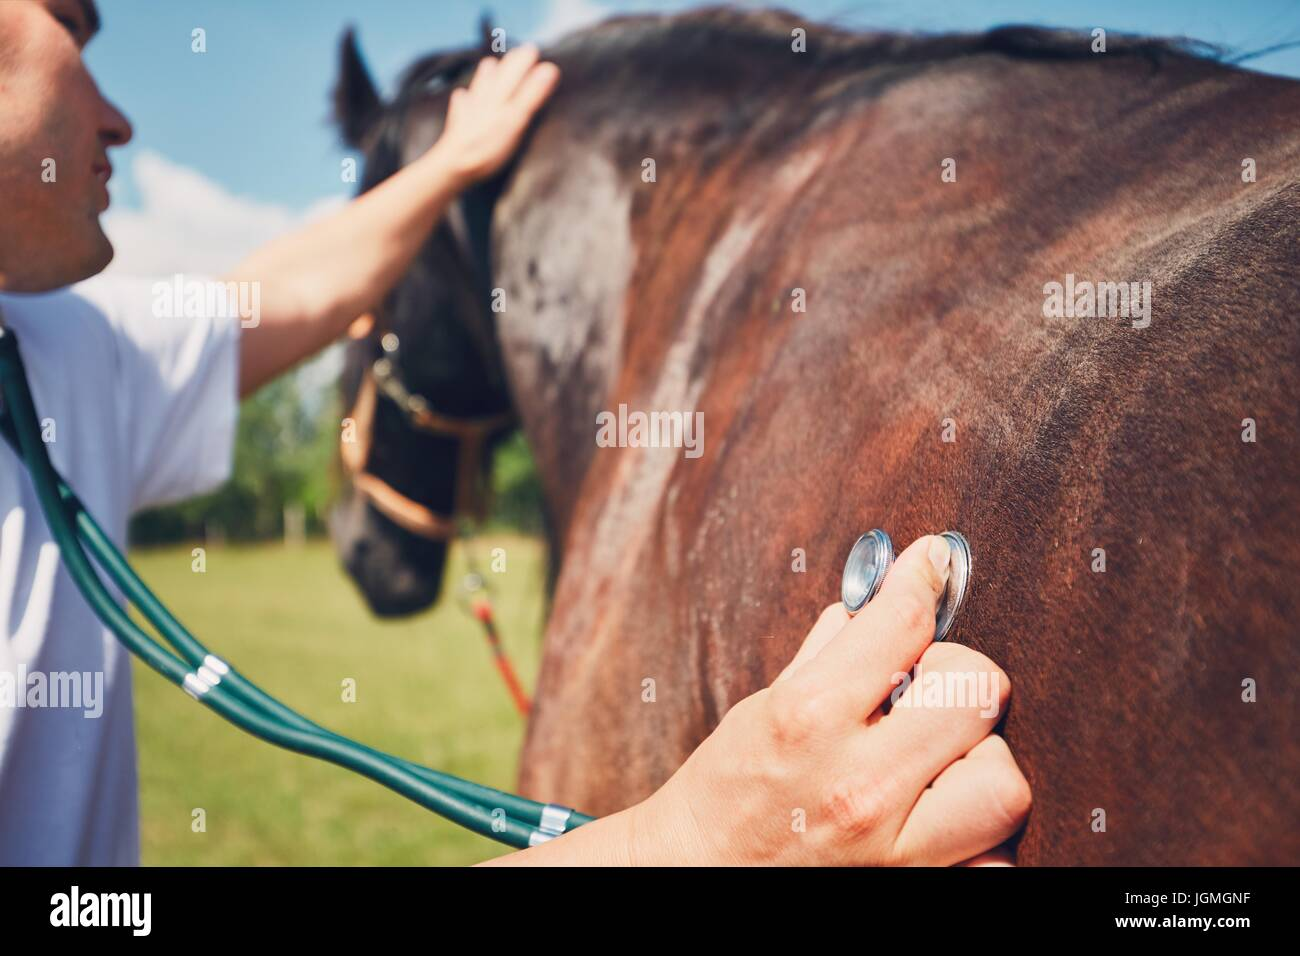 Veterinarian during medical exam (listening to heartbeat and lung) of the horse. - Stock Image